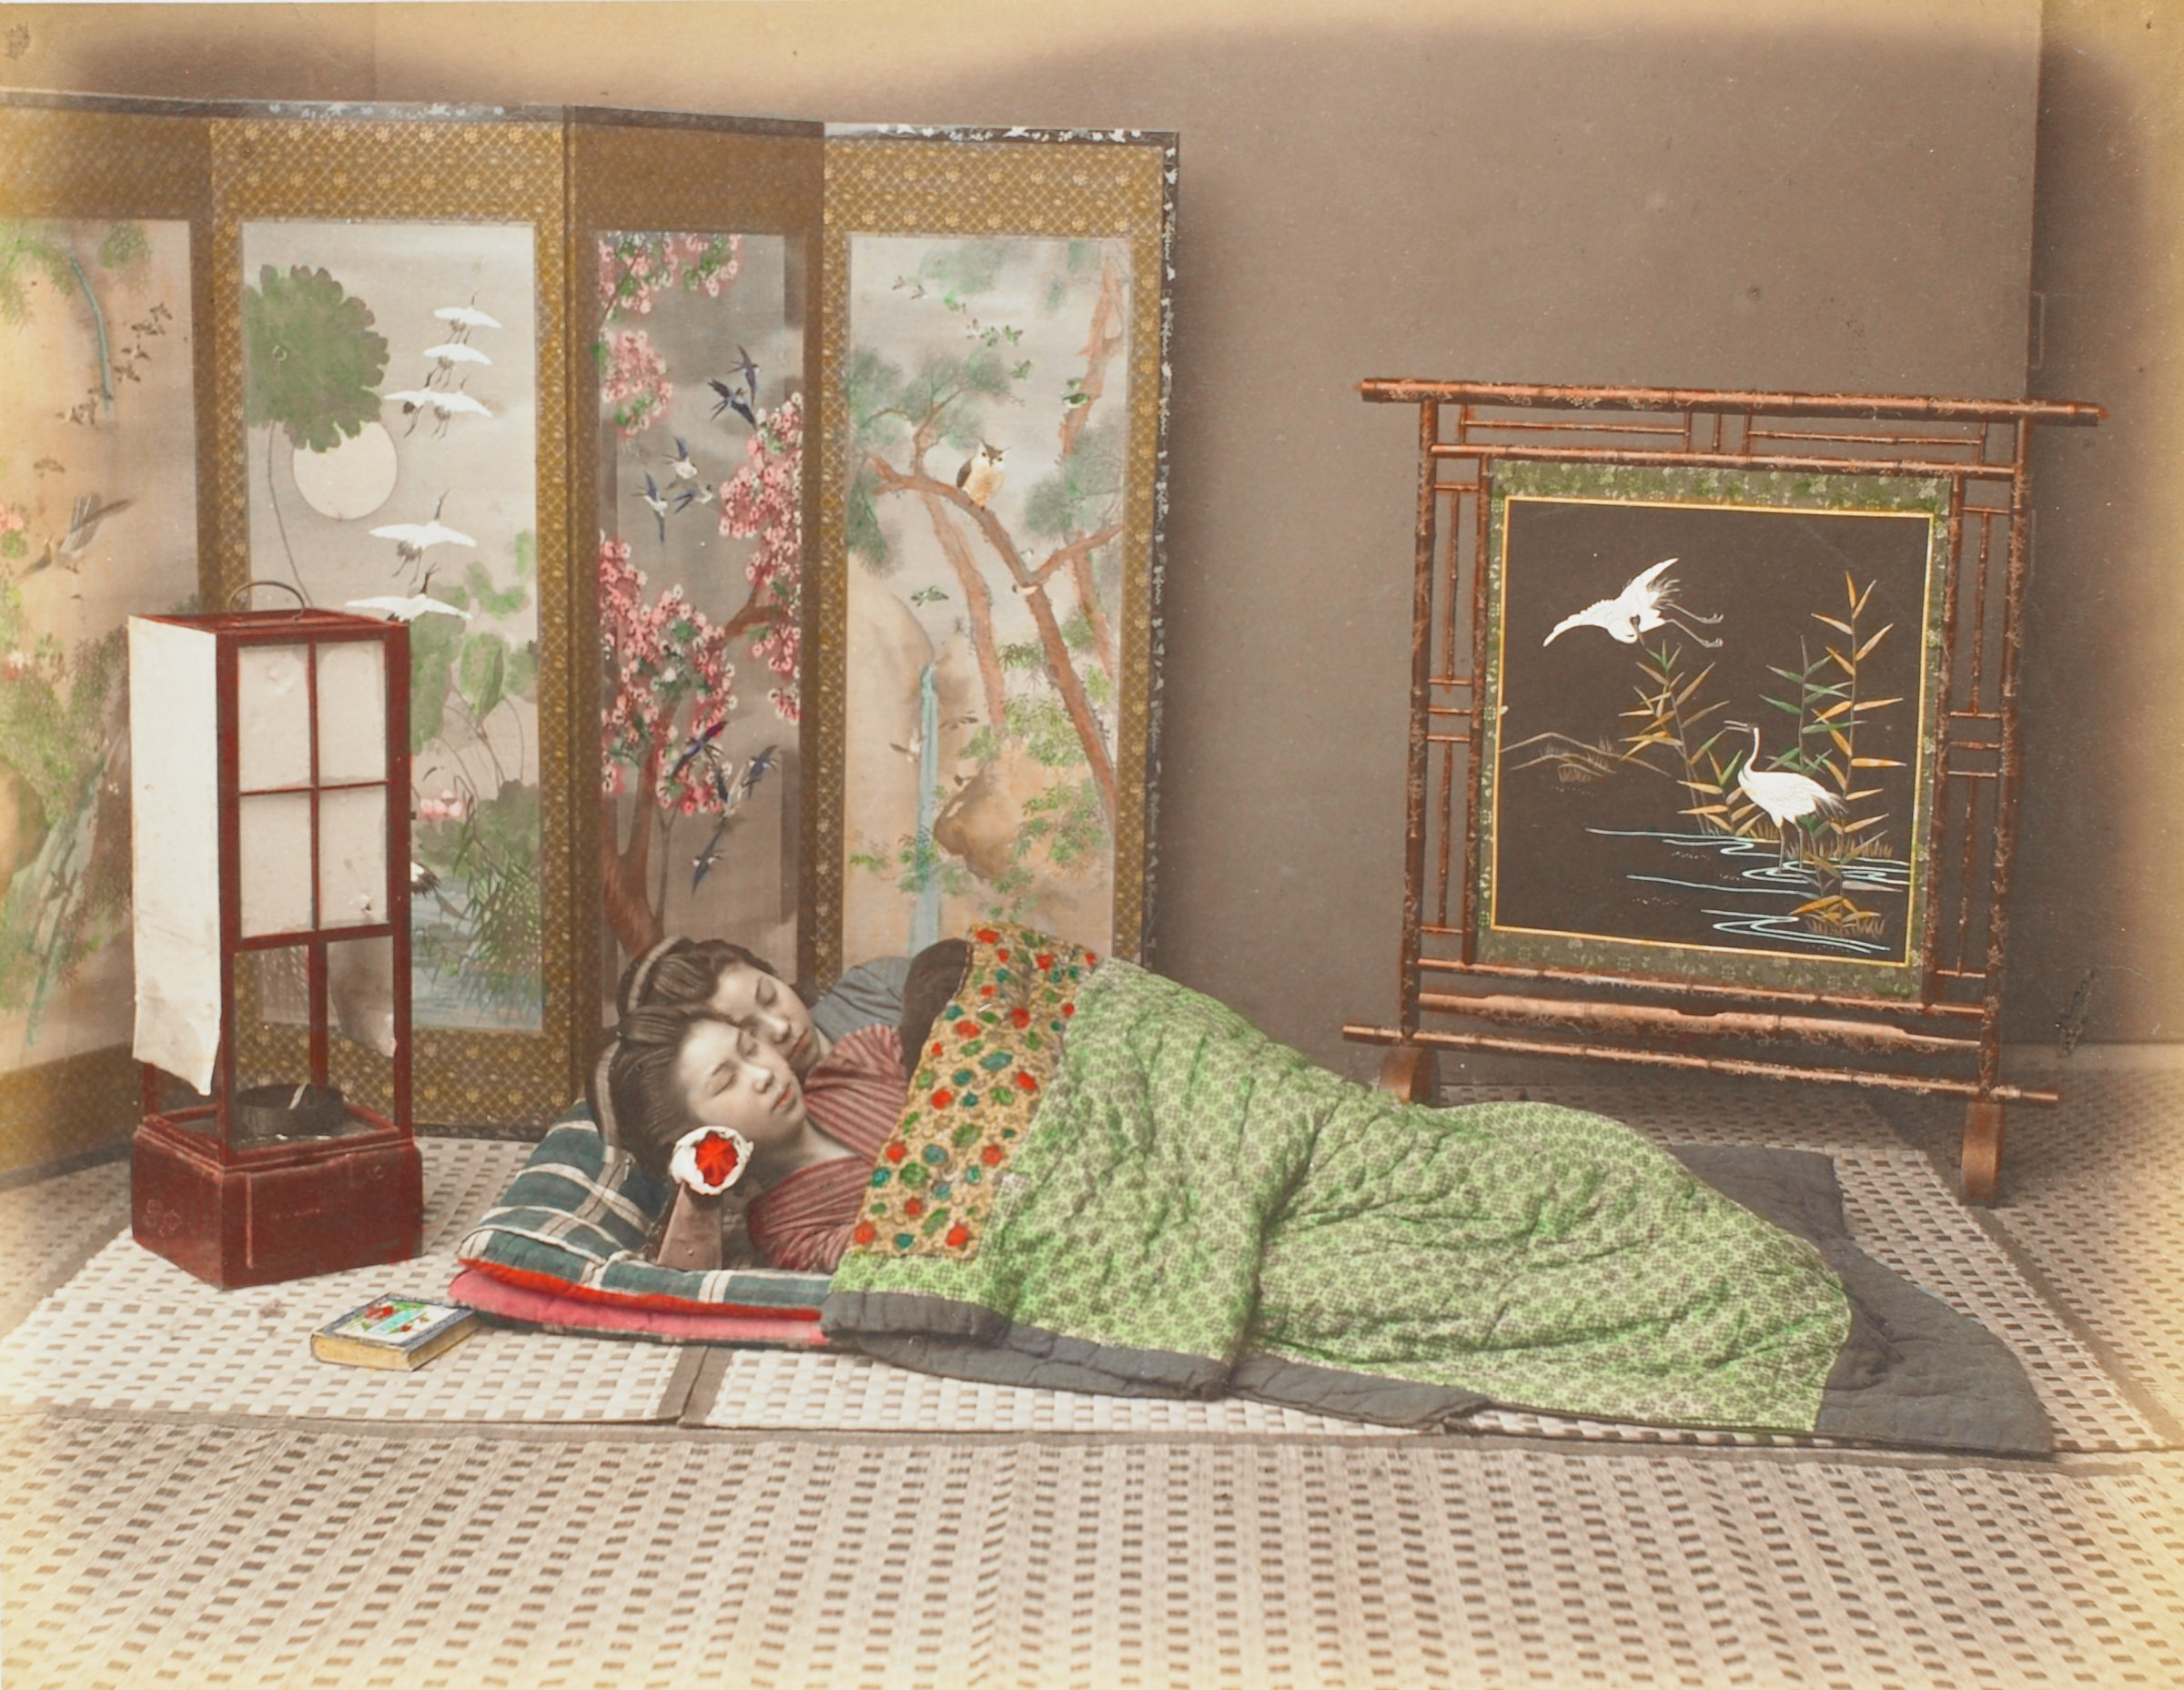 Sleeping Girls (.14, recto); Westside Resting Place (.15, verso), Attributed to Kusakabe Kimbei, hand-colored albumen prints mounted to album page